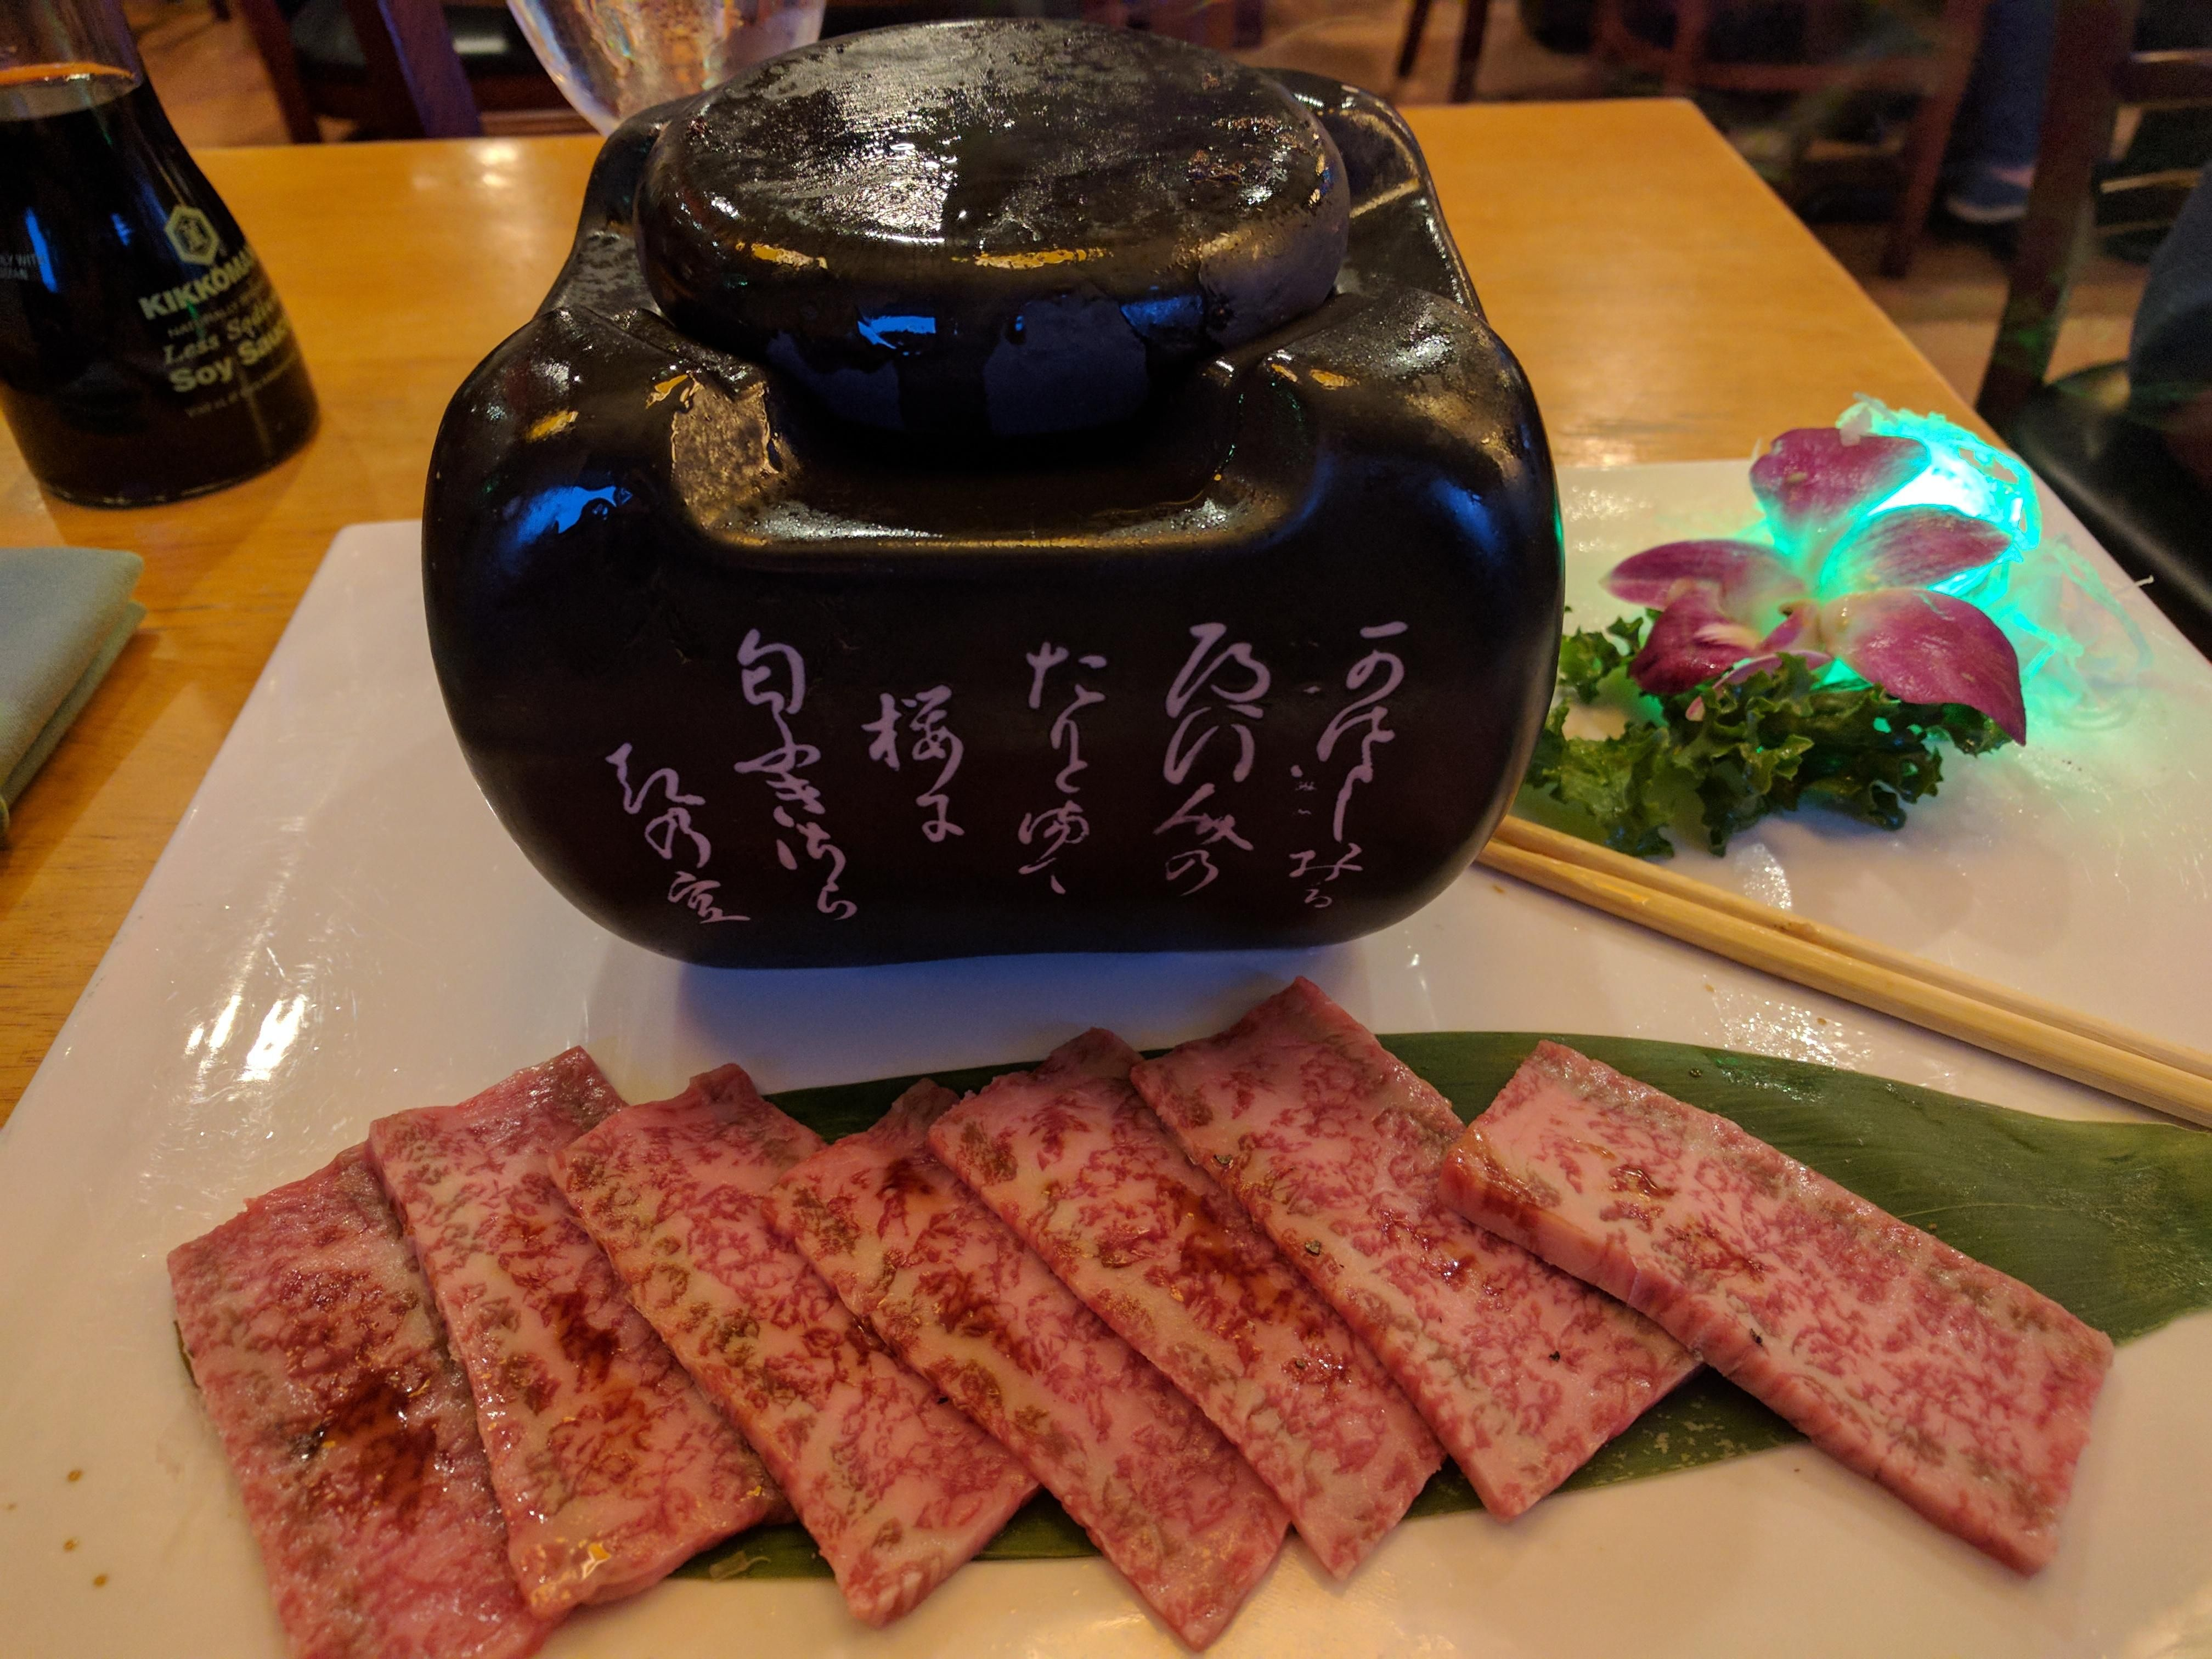 [I ate] Kobe Beef. #recipes #food #cooking #delicious #foodie #foodrecipes #cook #recipe #health